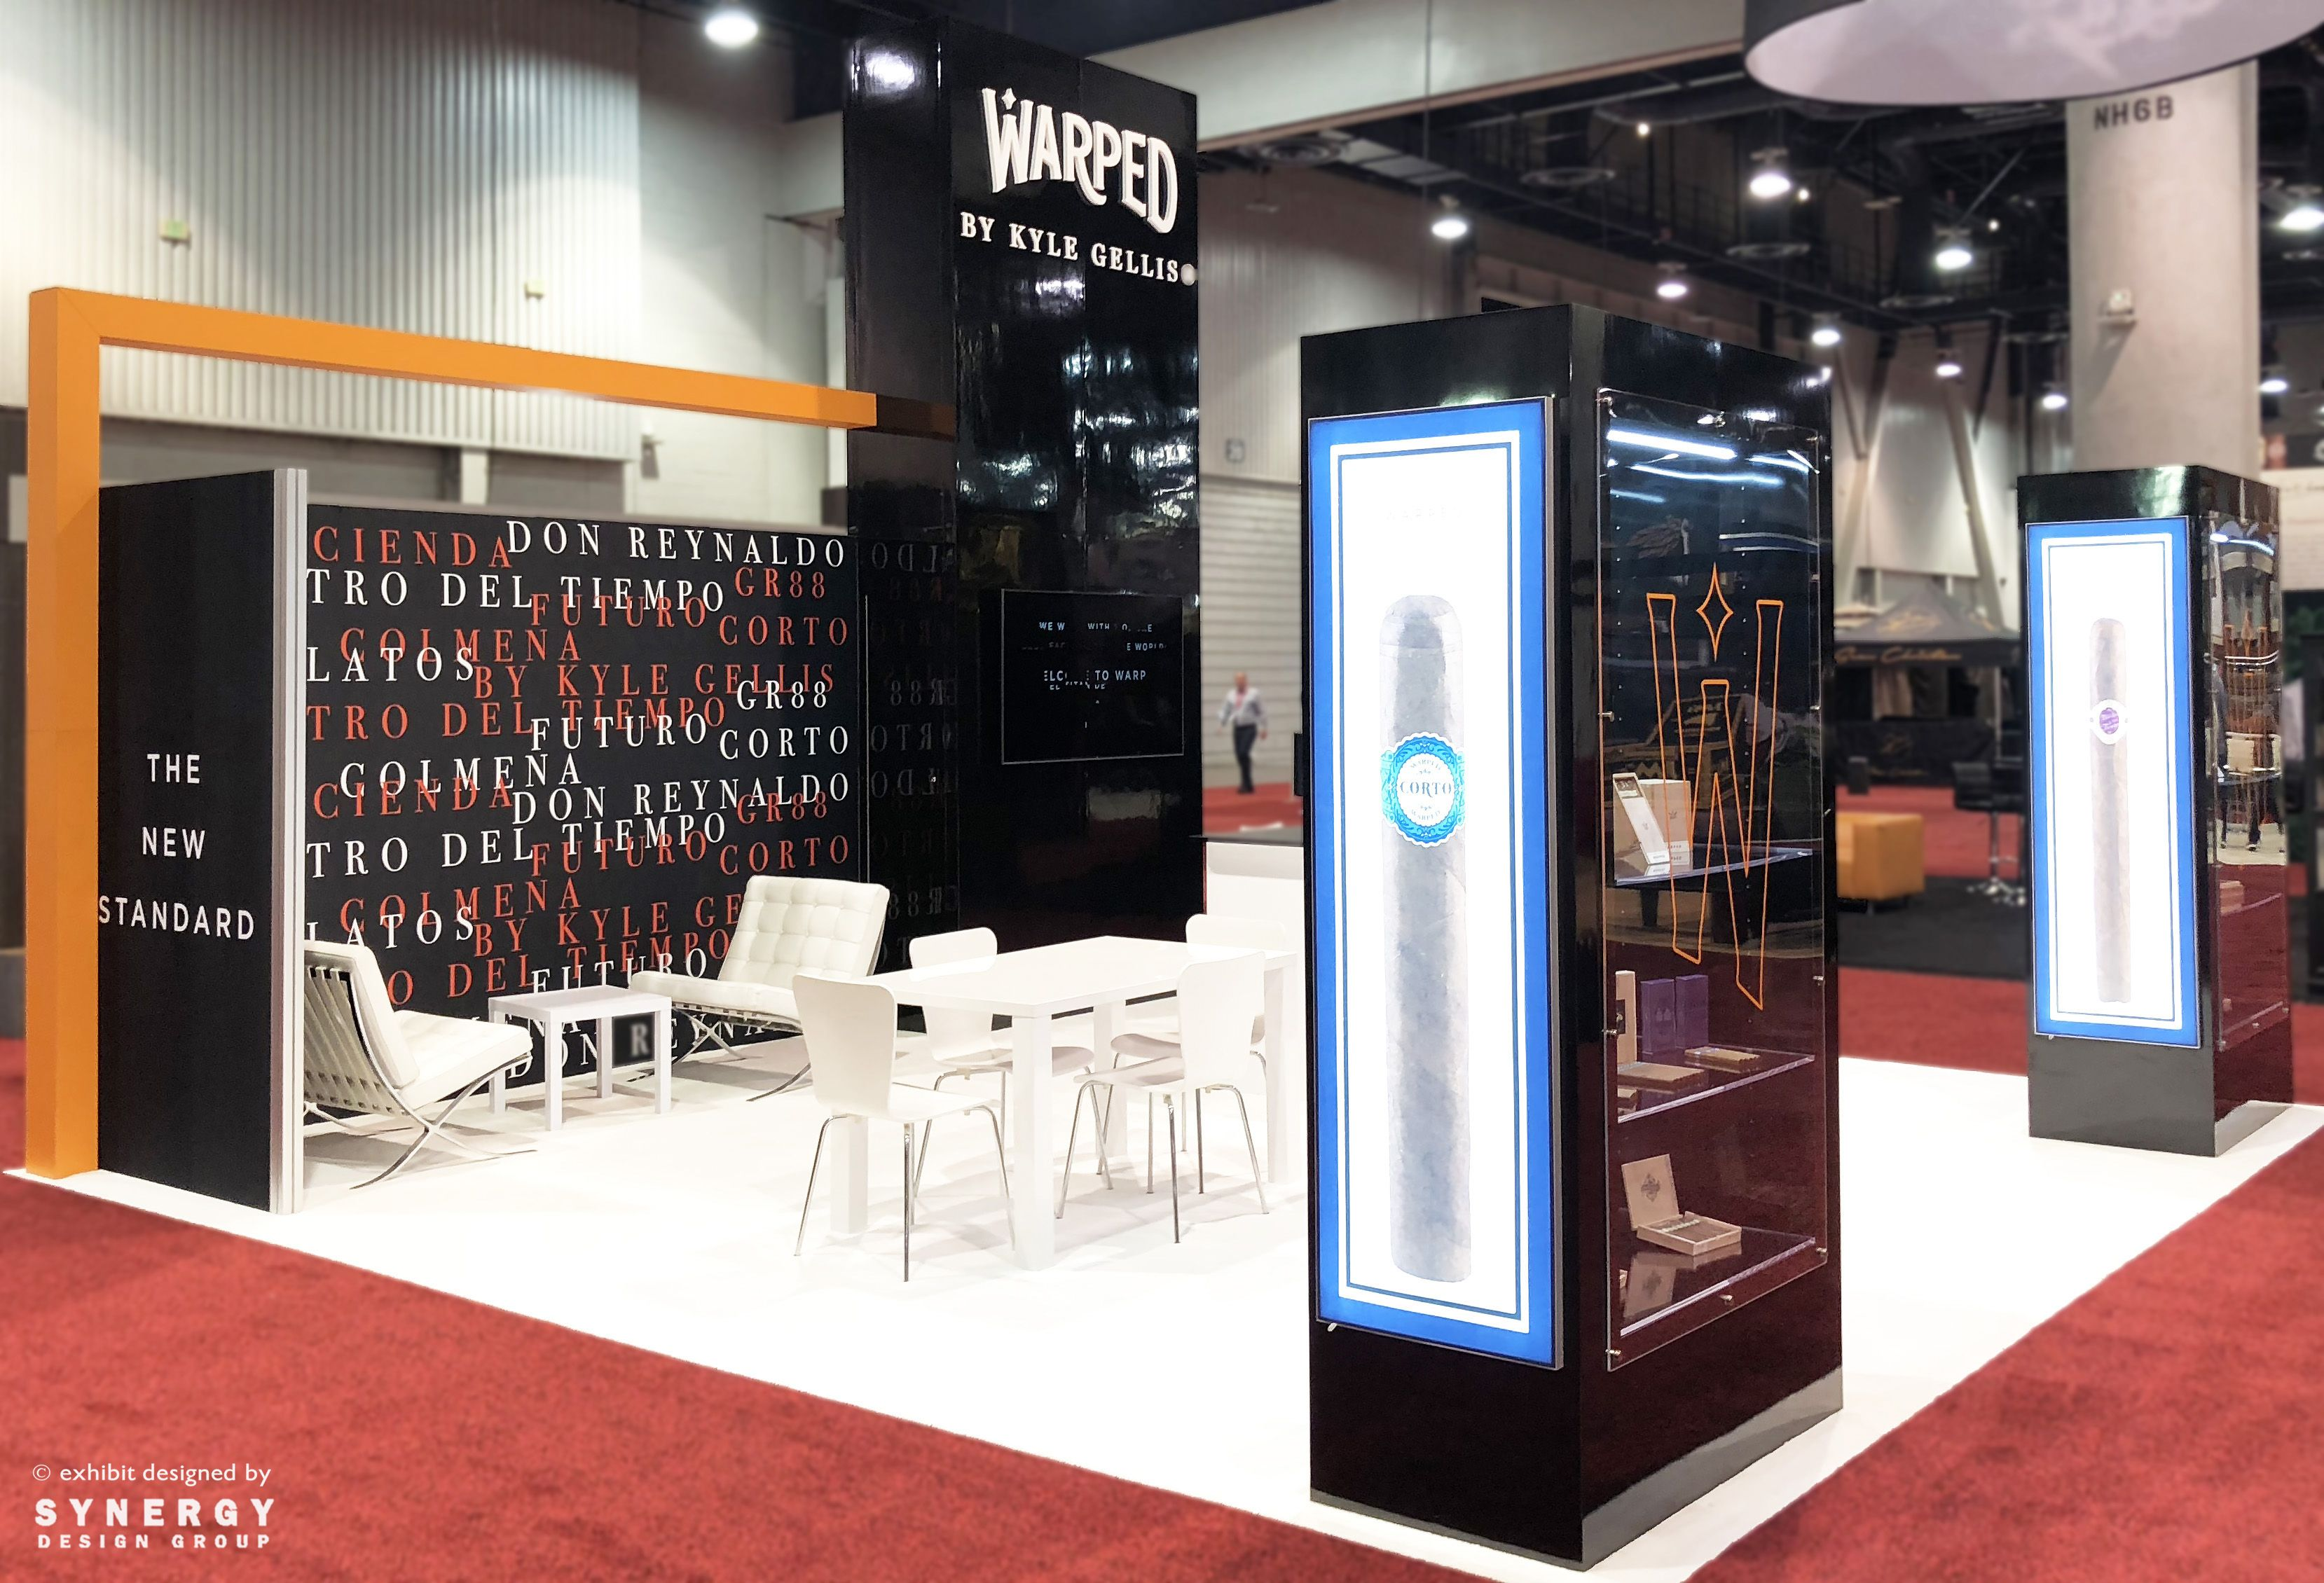 Client Warped Cigar S 20x20 Island Trade Show Booth For Ipcpr In Las Vegas Nevada Custom Product Showcases For Dis Exibition Design Trade Show Display Design